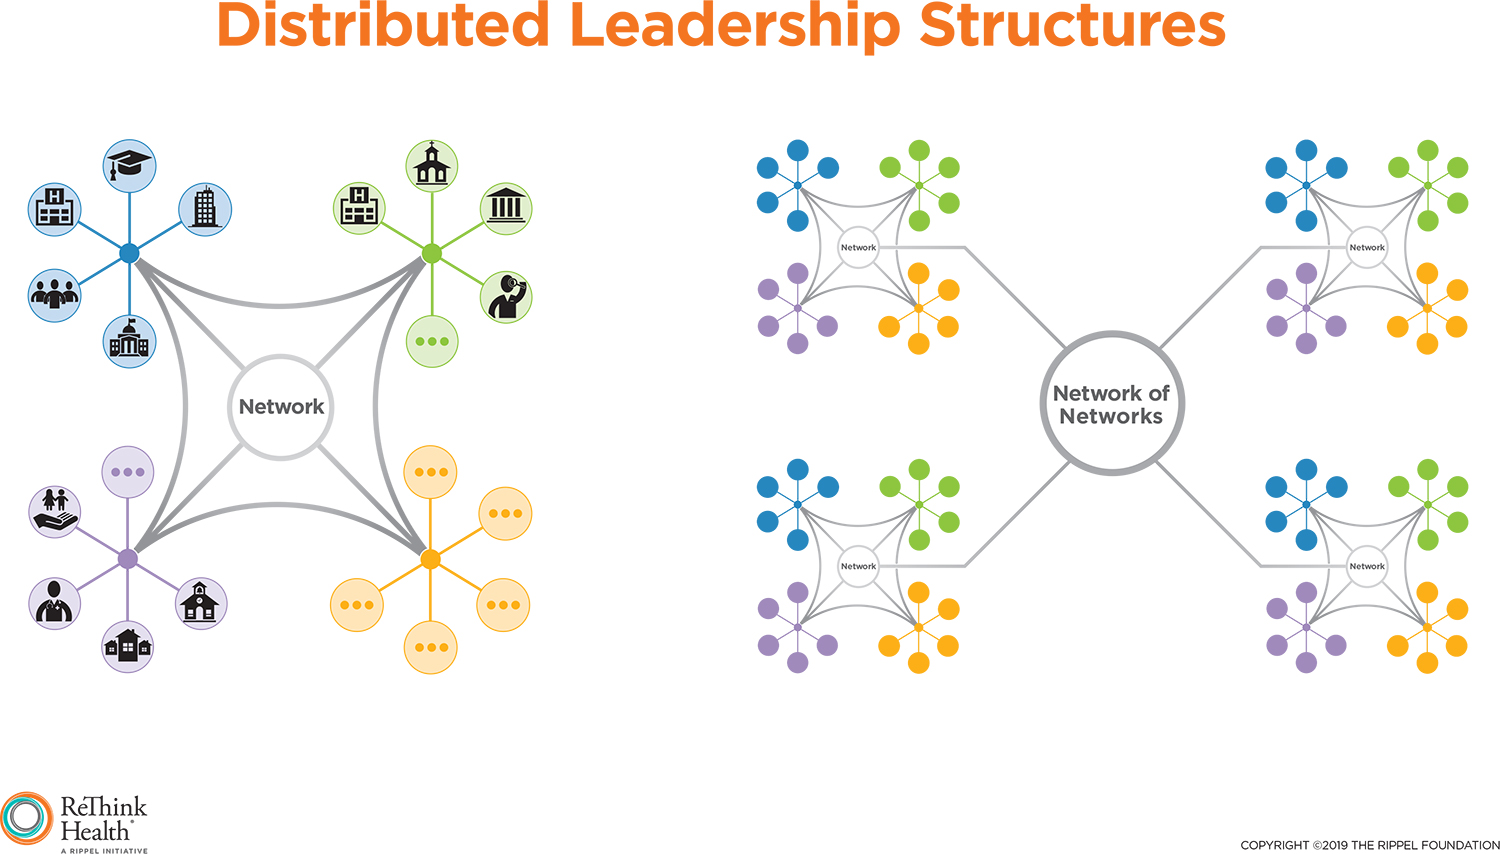 Distributing Leadership to Transform Health Ecosystems